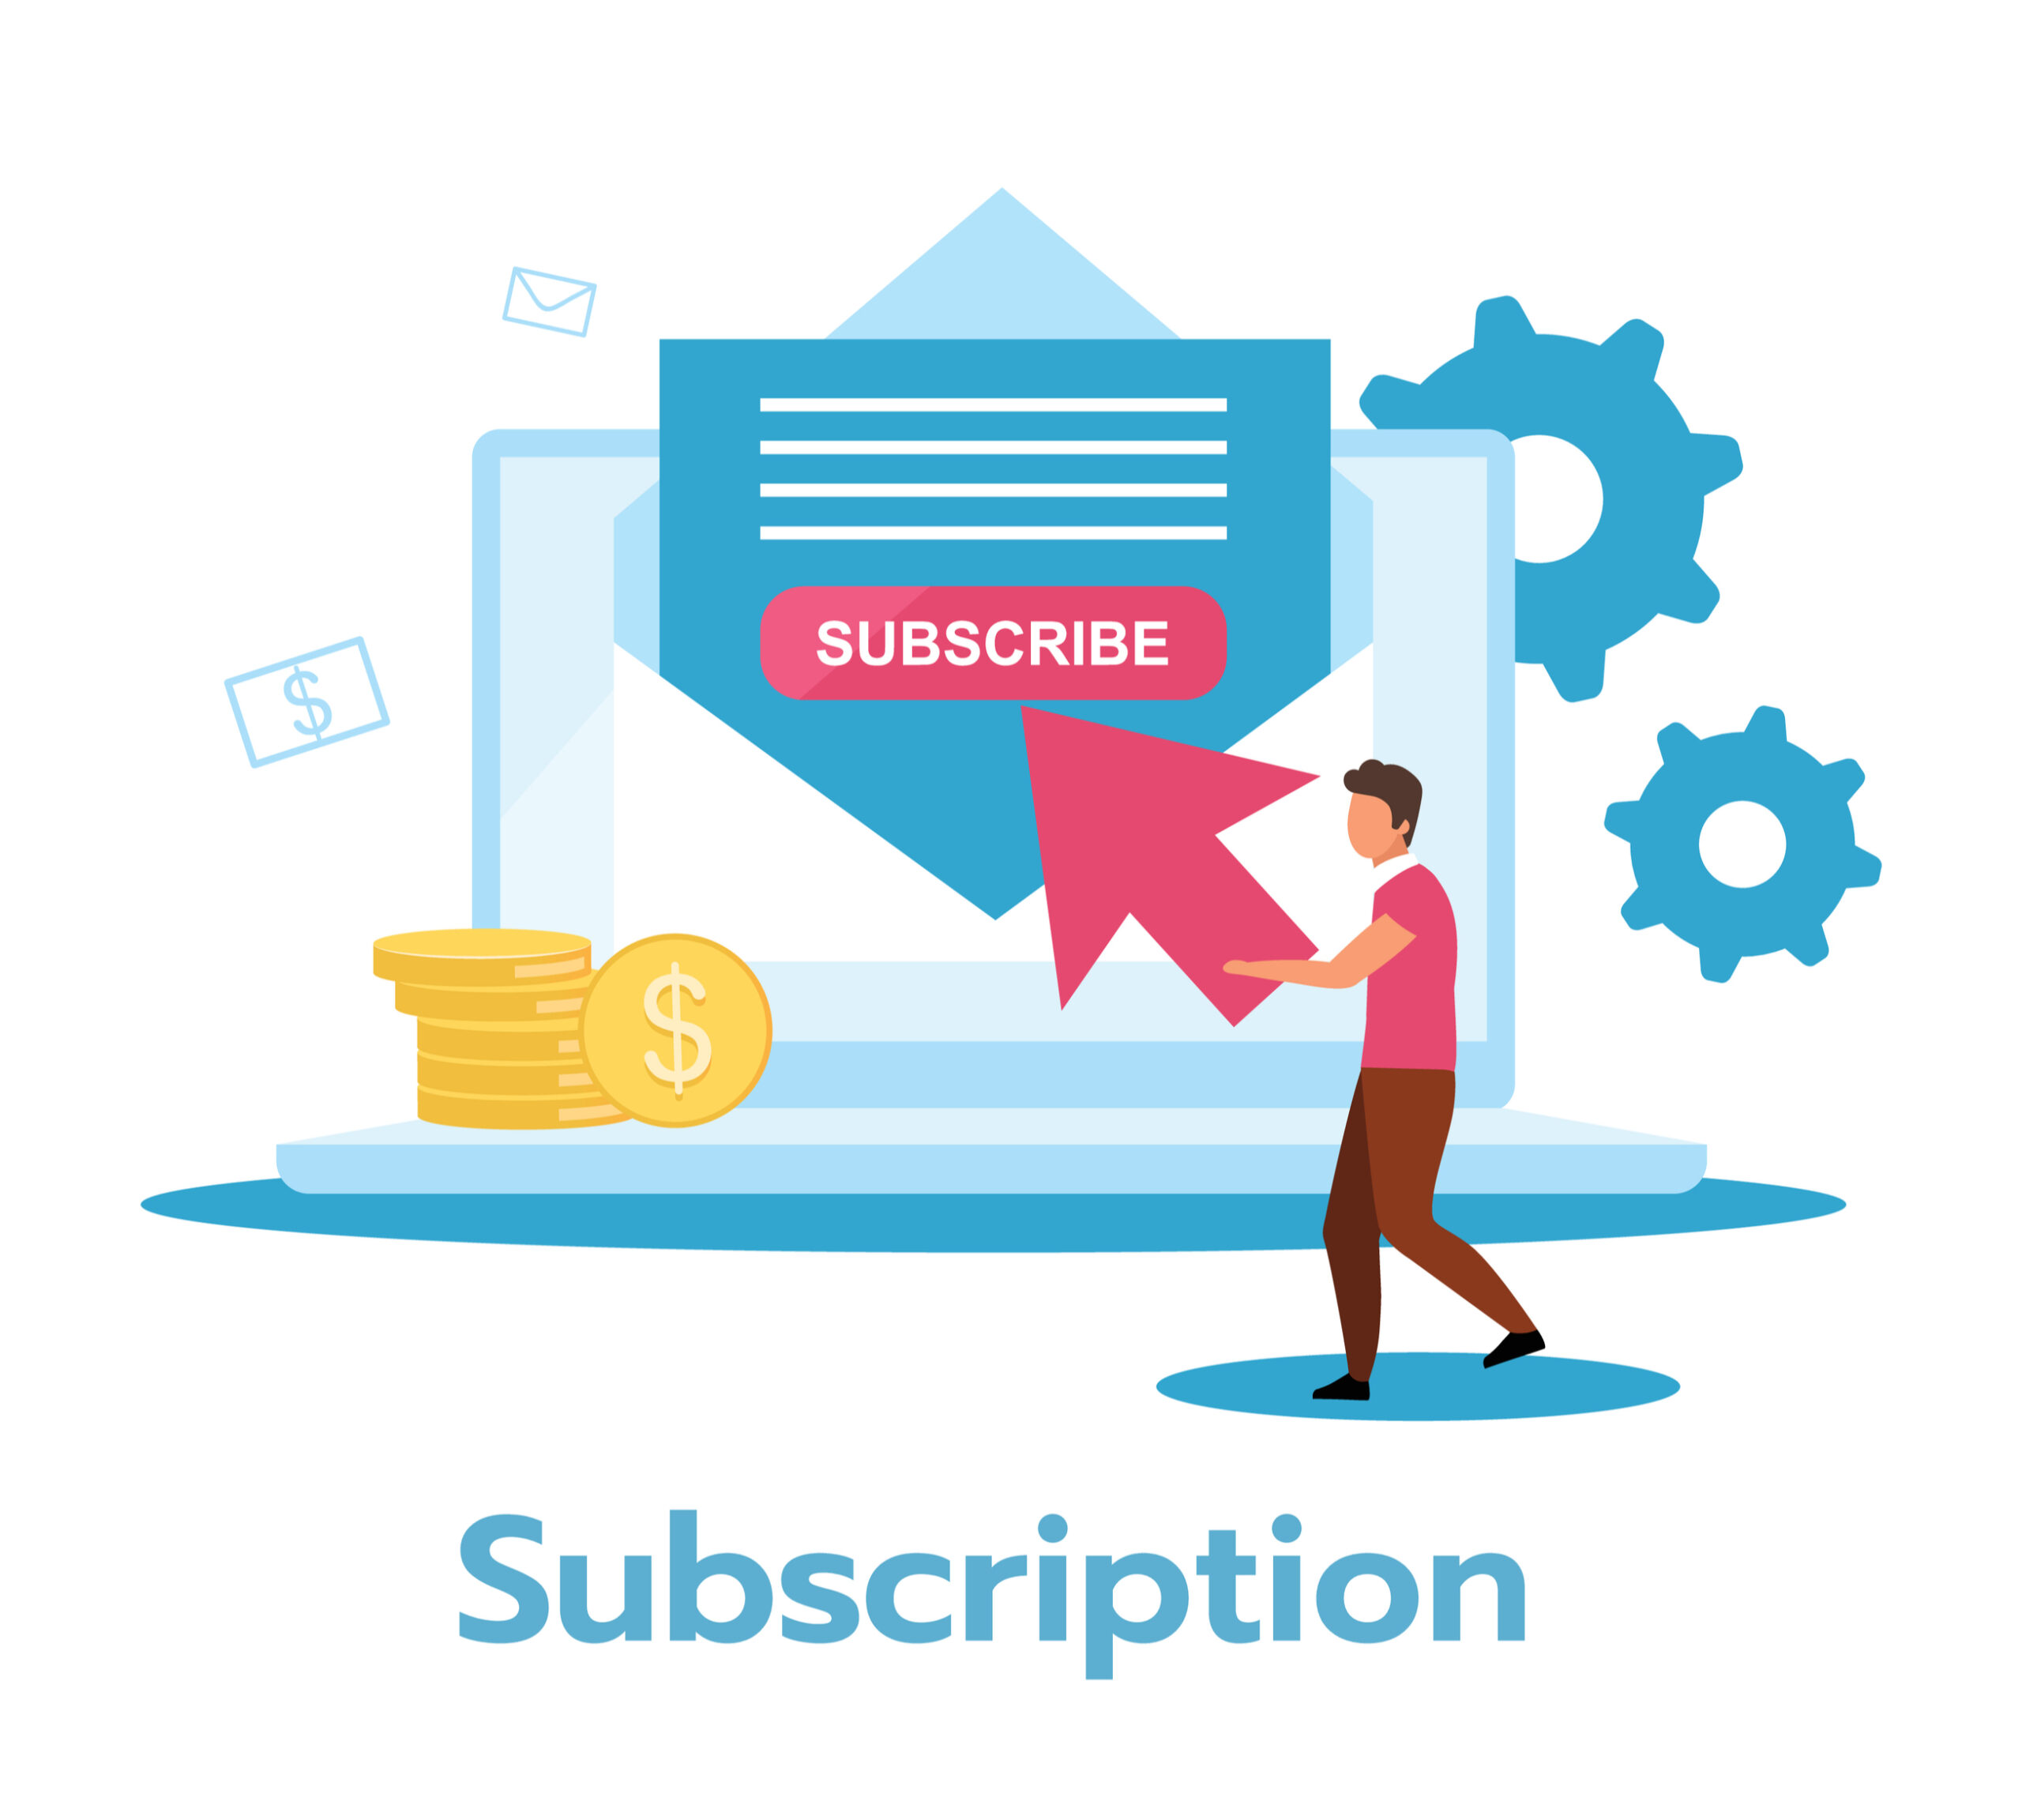 5 Steps to Turn Contacts into Subscribers